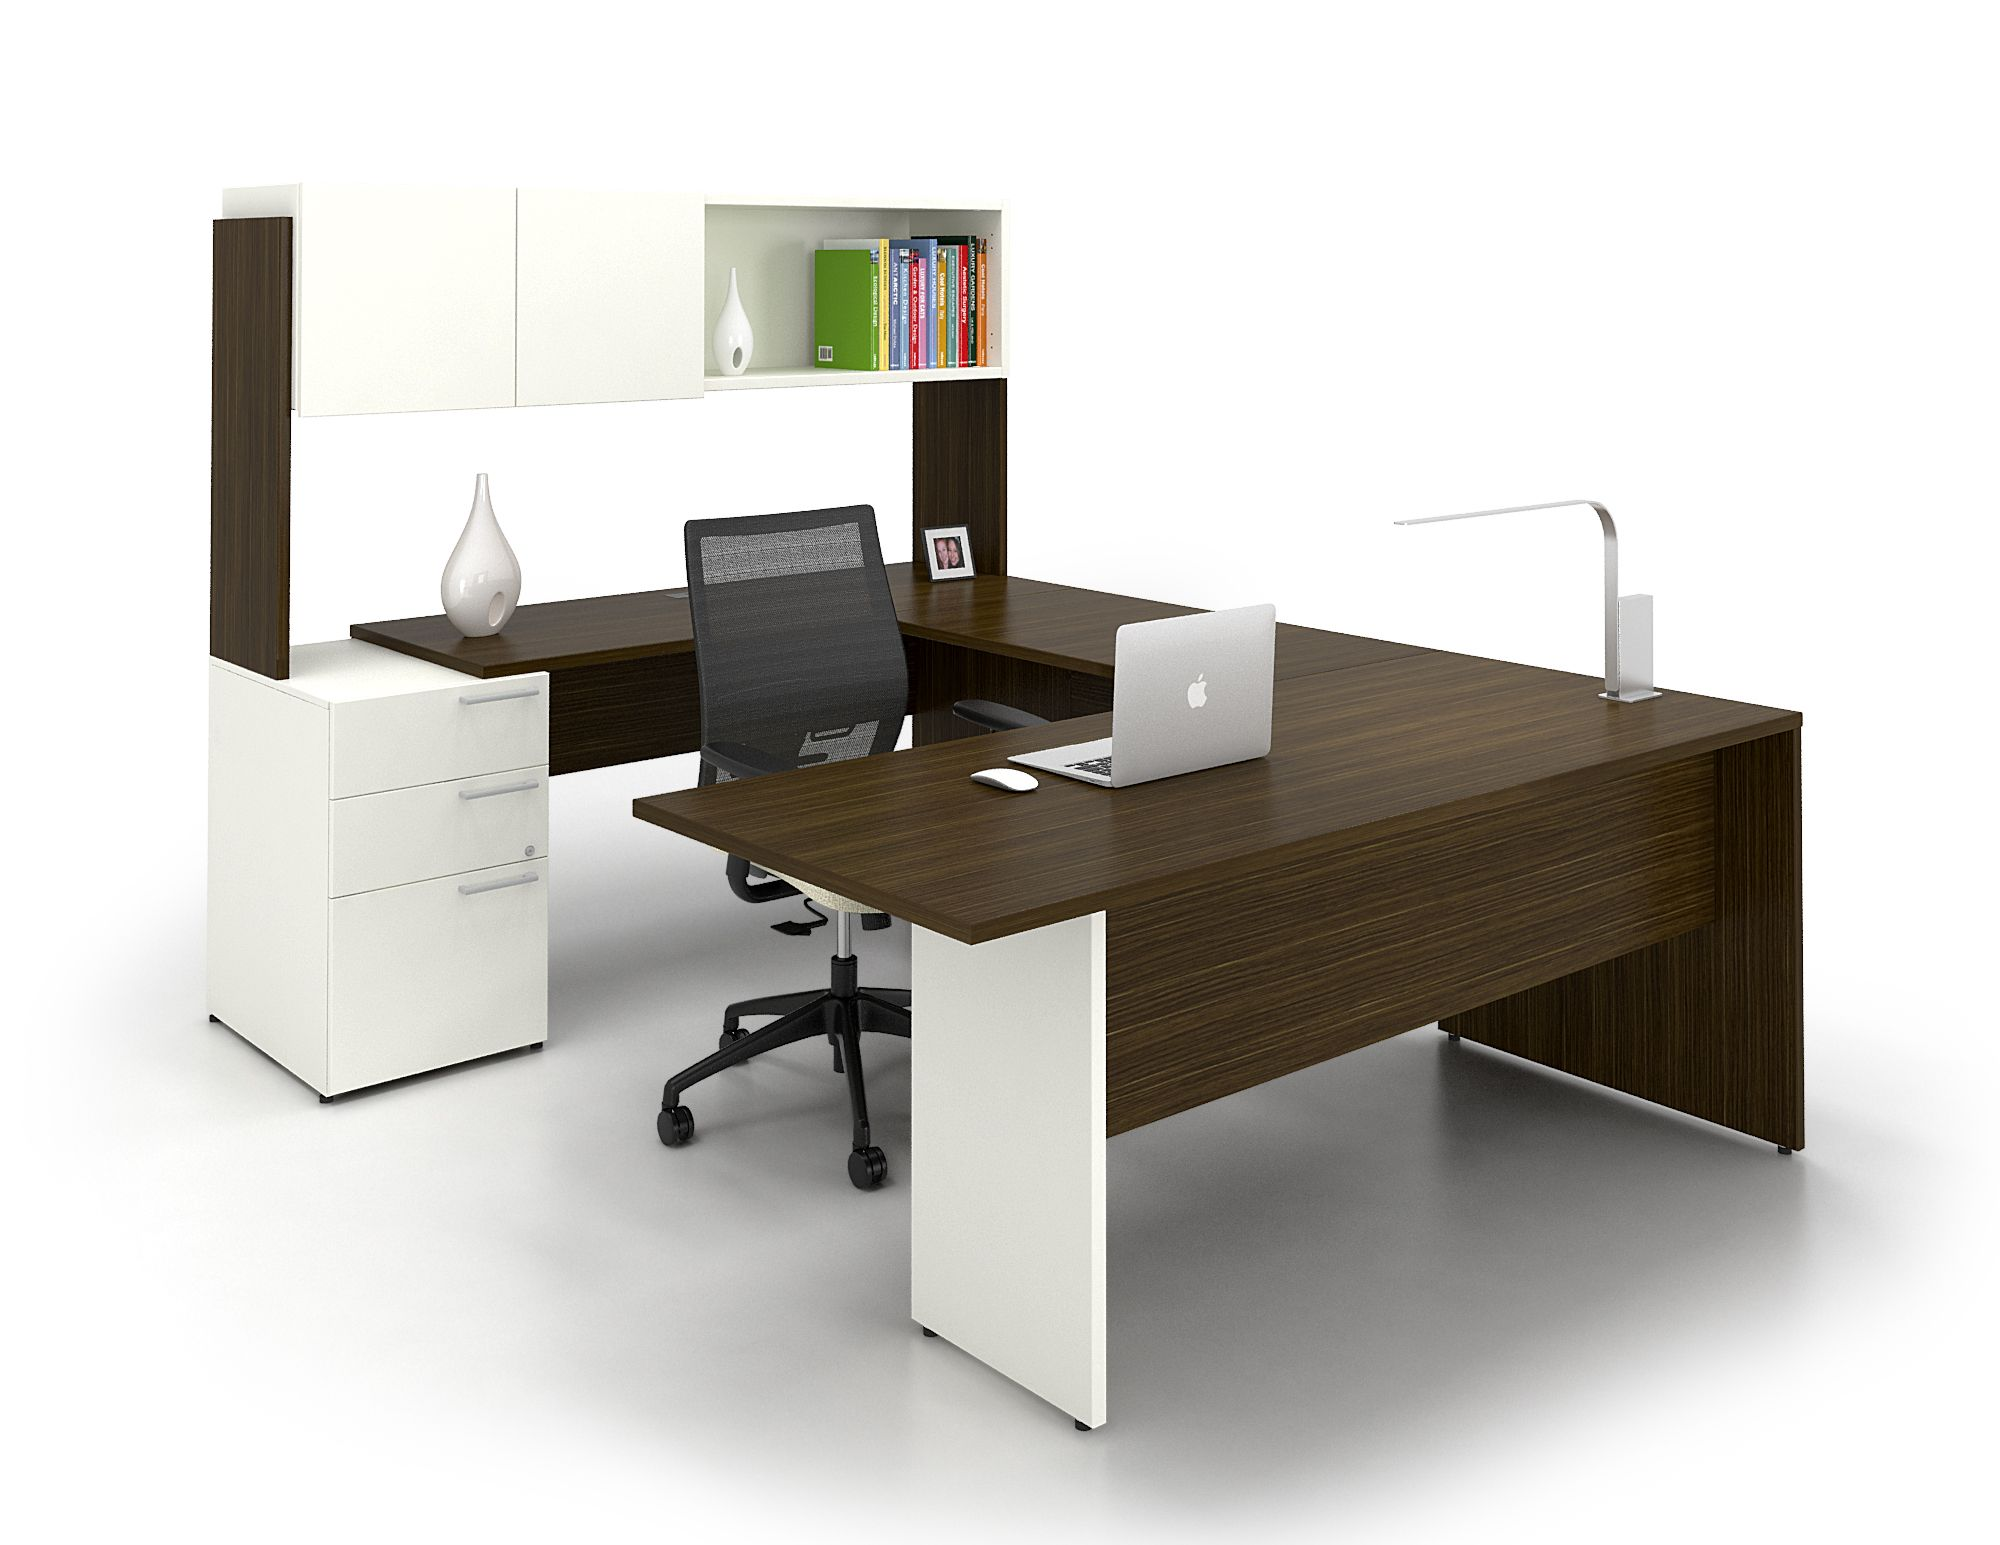 Www Alandesk Comc A By Groupe Lacasse Furniture Home Office